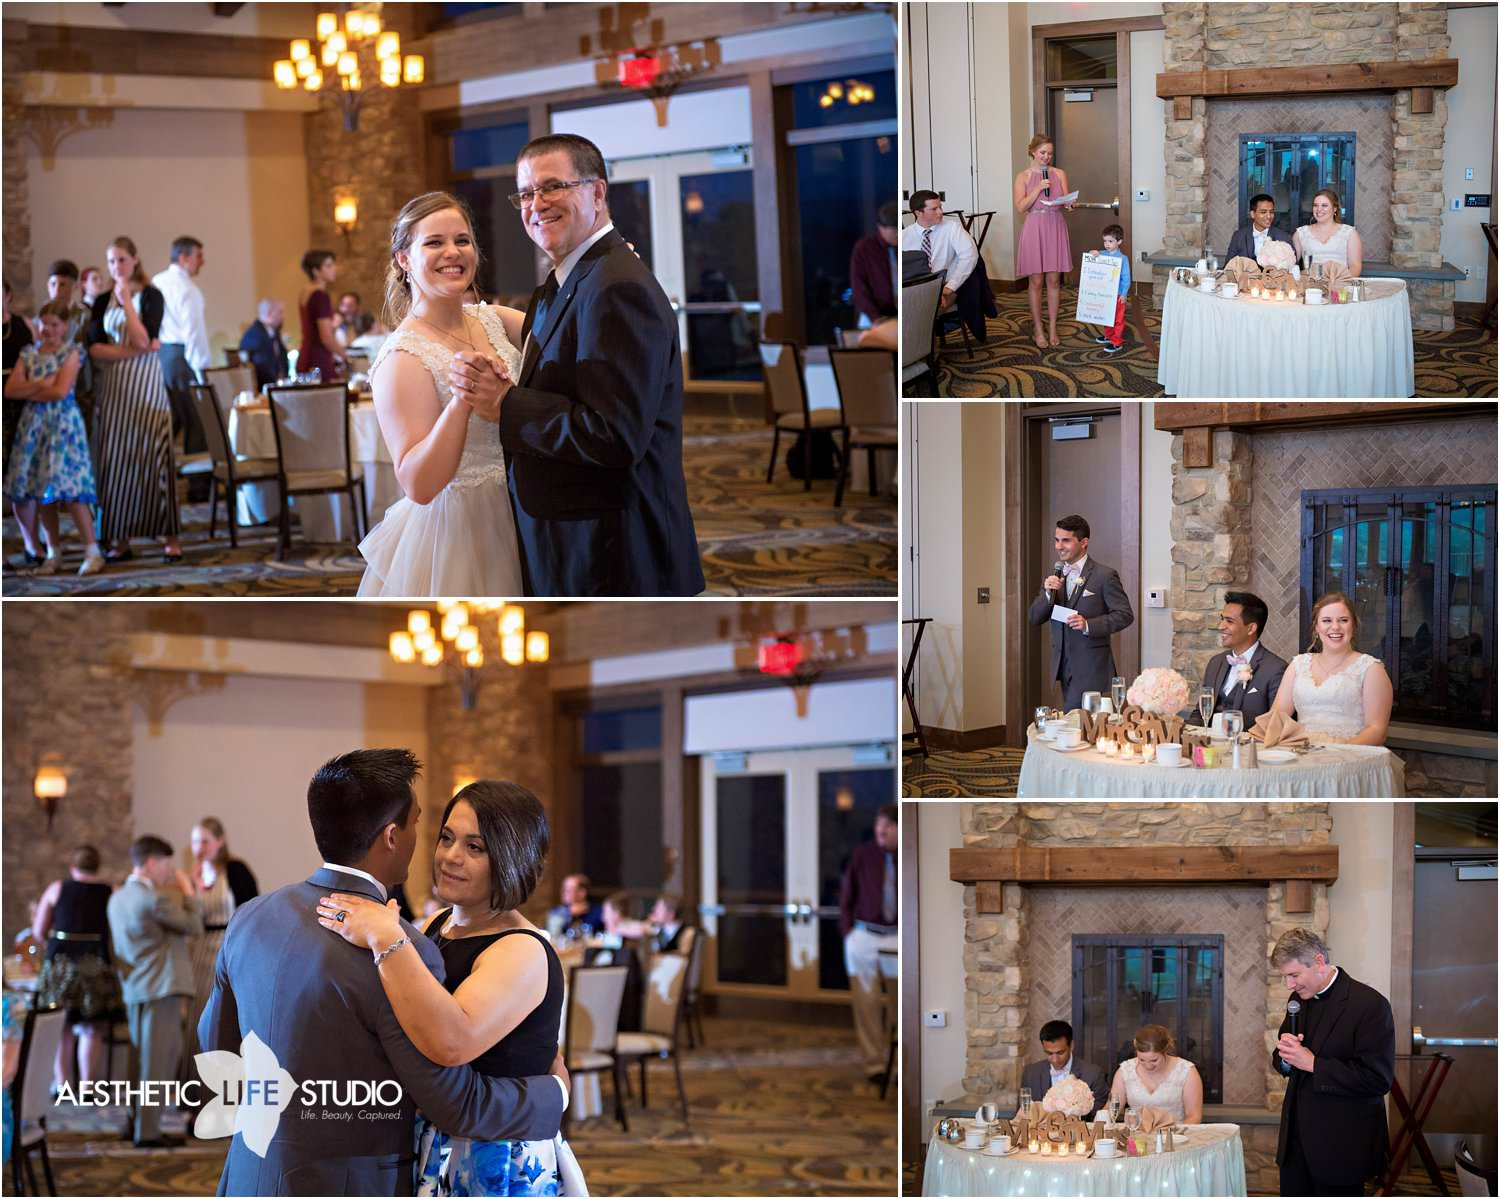 Highland Lodge Liberty Mountain Resort Wedding 021.jpg